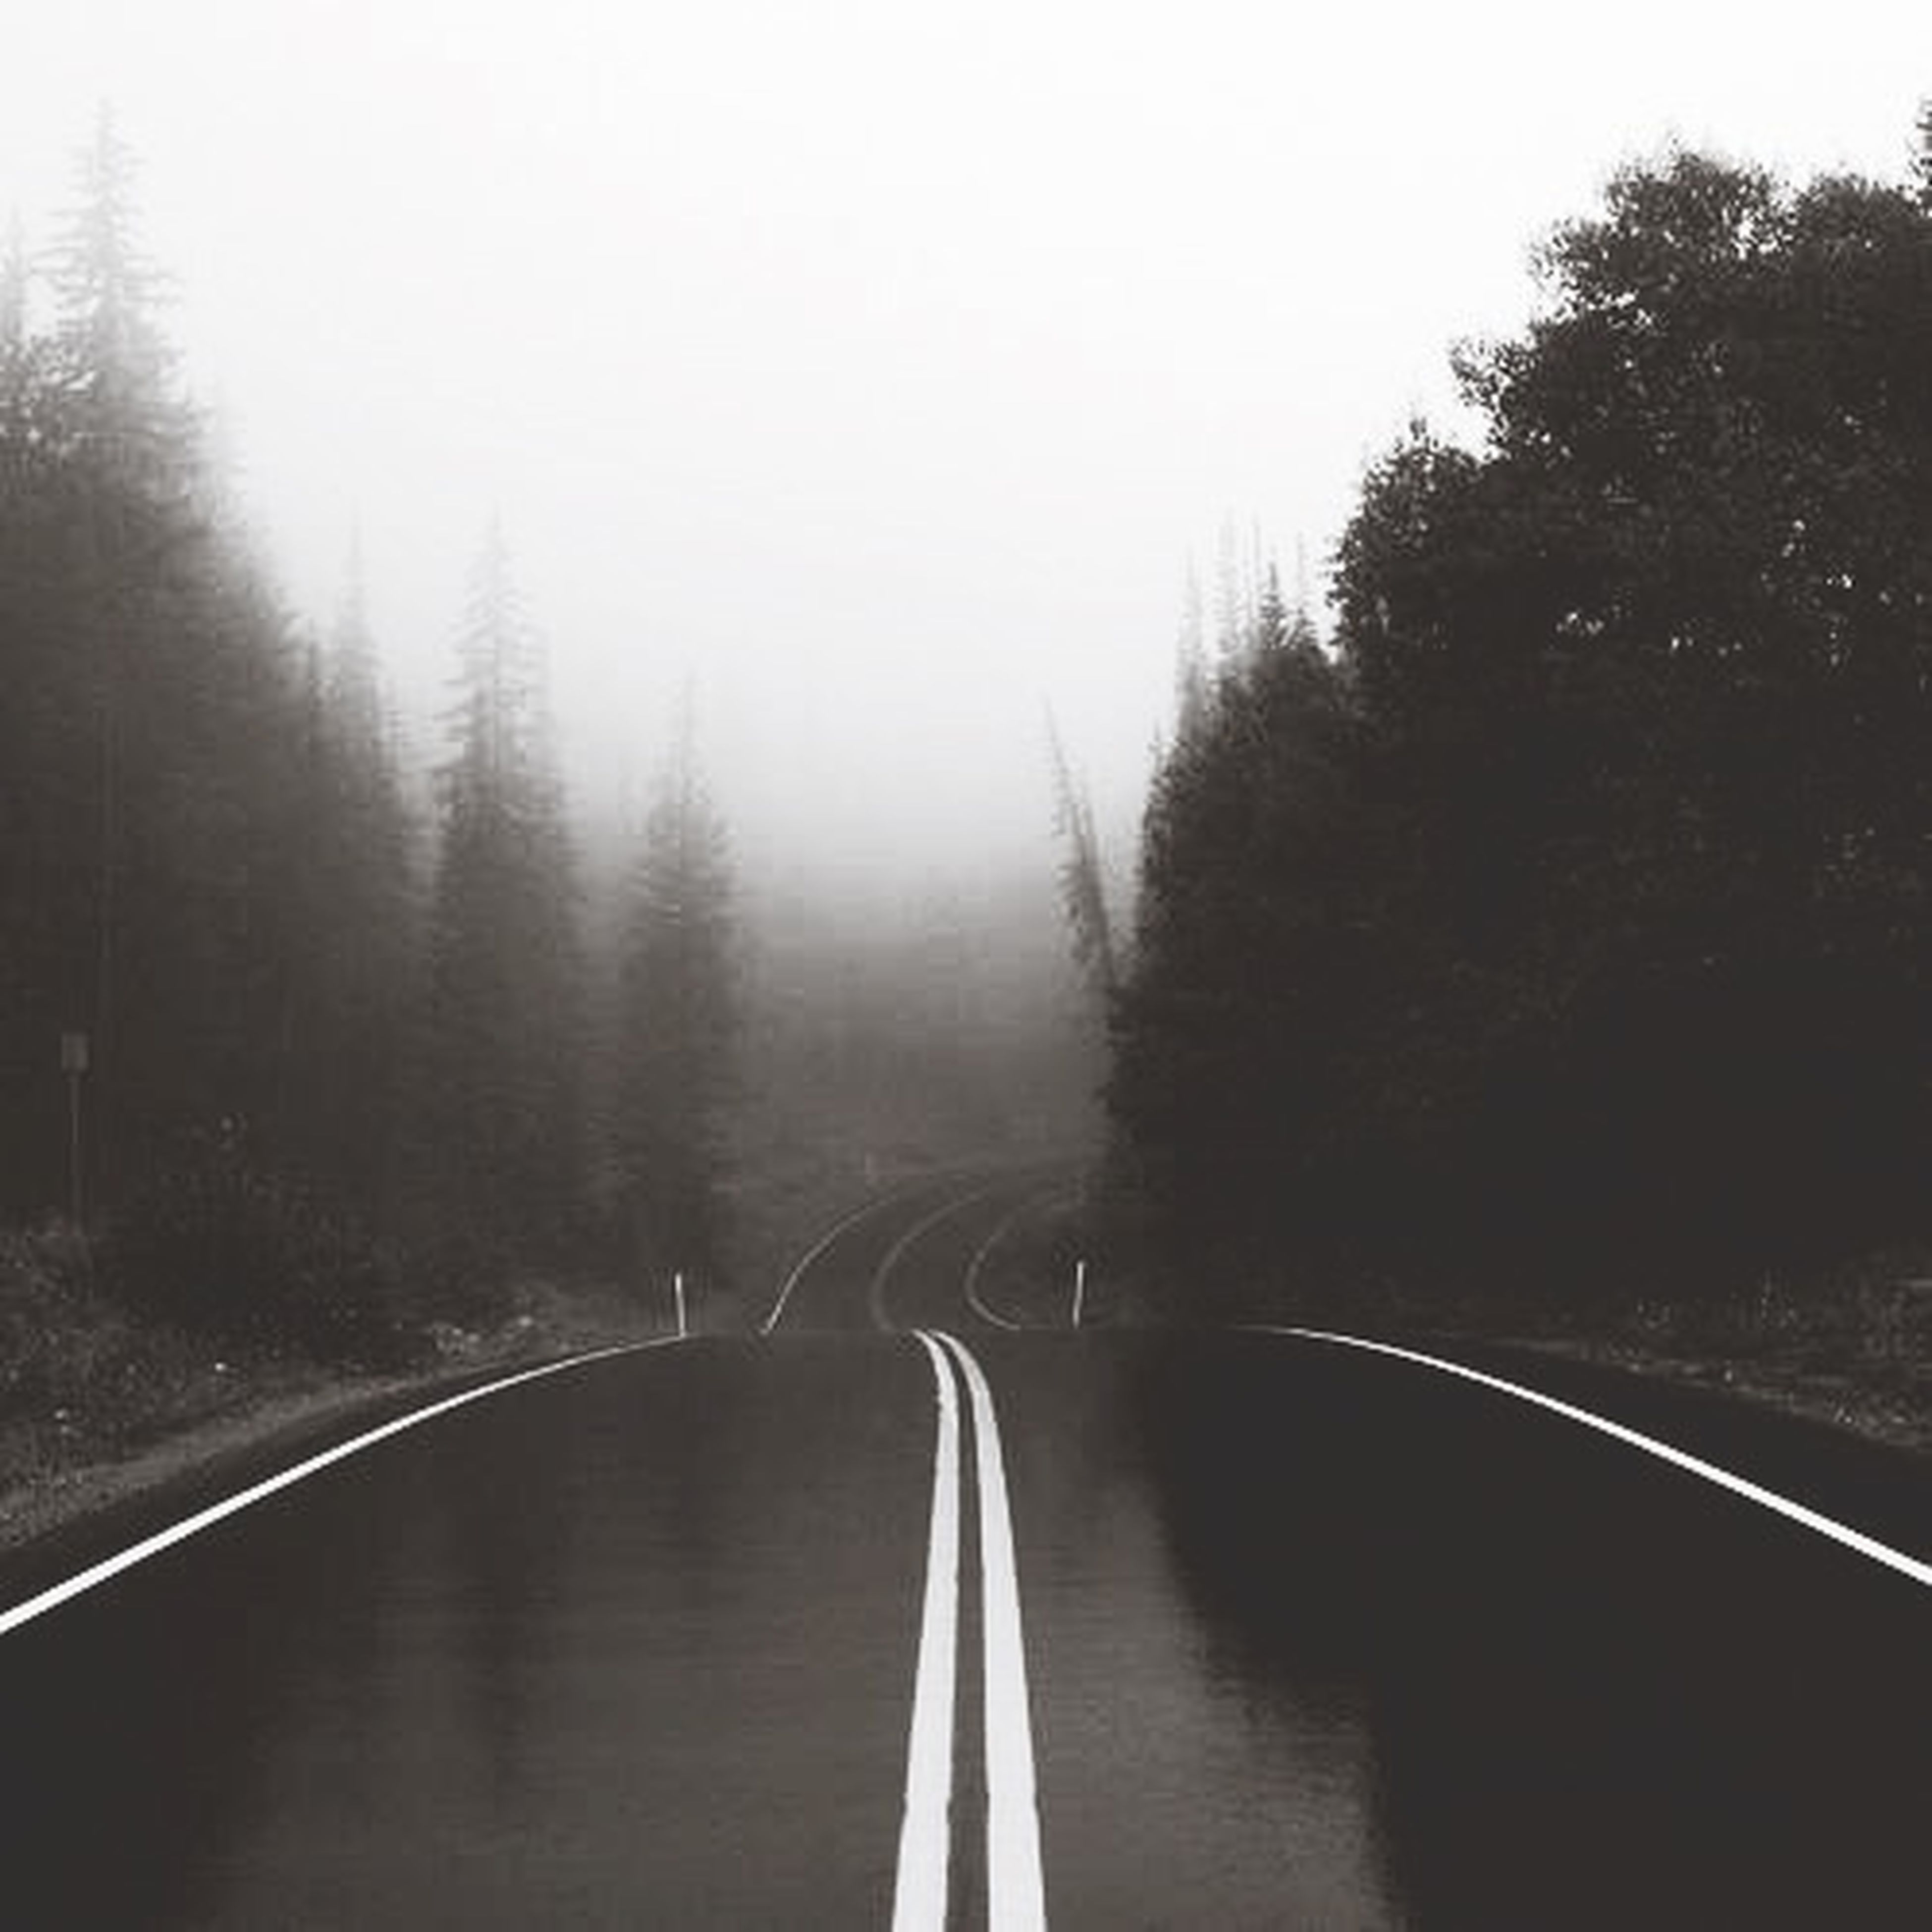 transportation, the way forward, tree, road, diminishing perspective, fog, mode of transport, vanishing point, windshield, weather, vehicle interior, road marking, tranquility, sky, travel, tranquil scene, glass - material, transparent, foggy